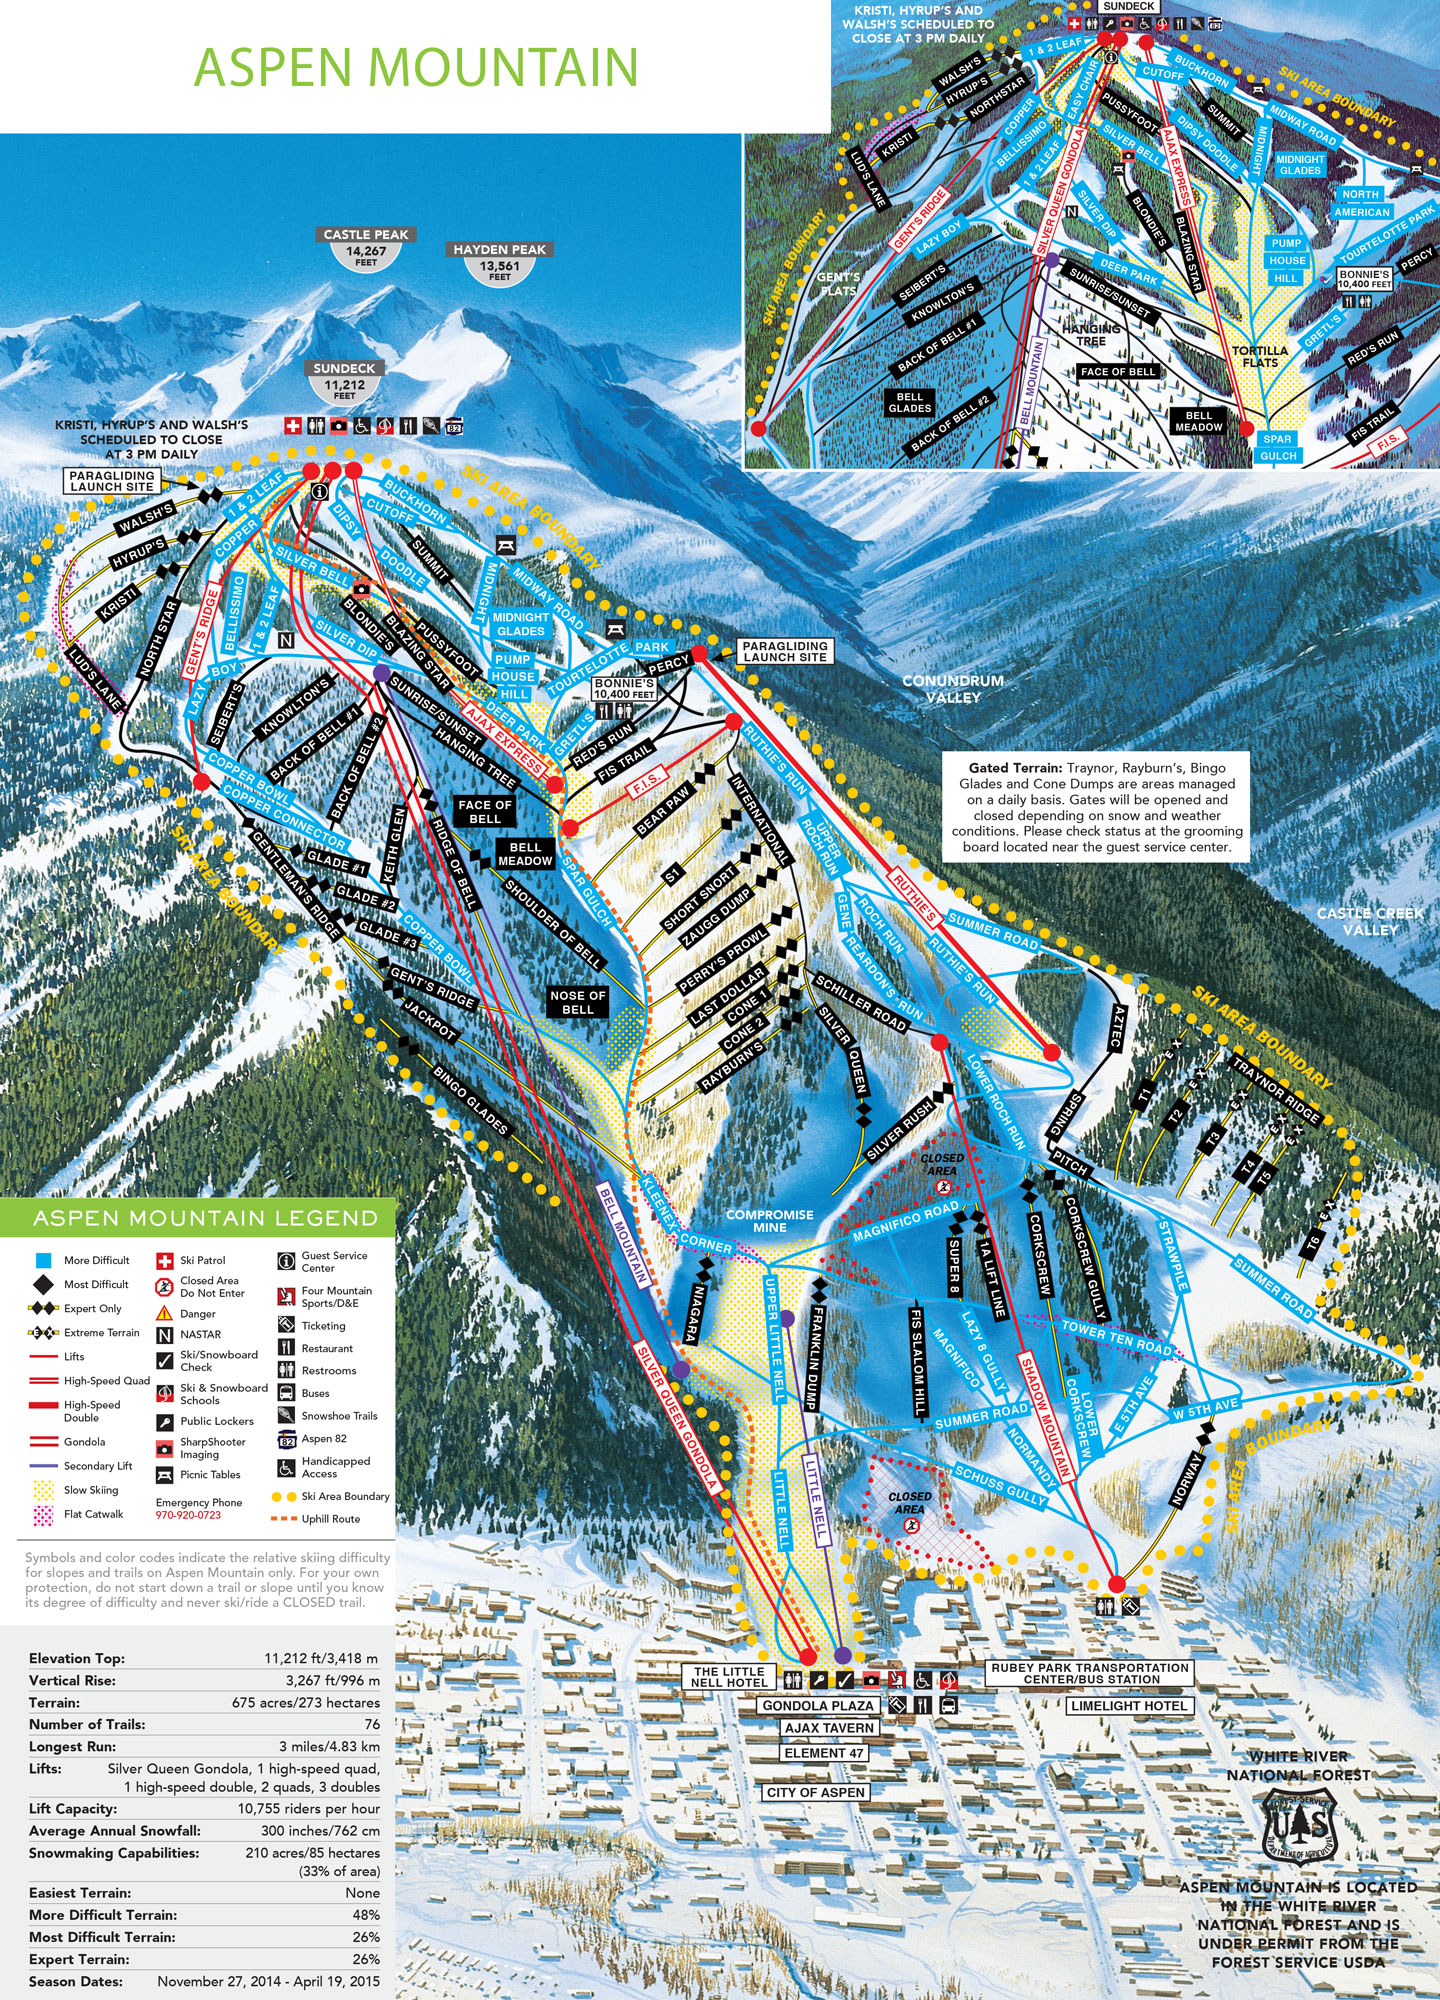 Aspen Snowm Skiing & Snowboarding Resort Guide   evo on map of all colorado golf courses, map of all colorado counties, map of buttermilk ski area, map of all colorado cities and towns, map of beaver creek ski resort trail,